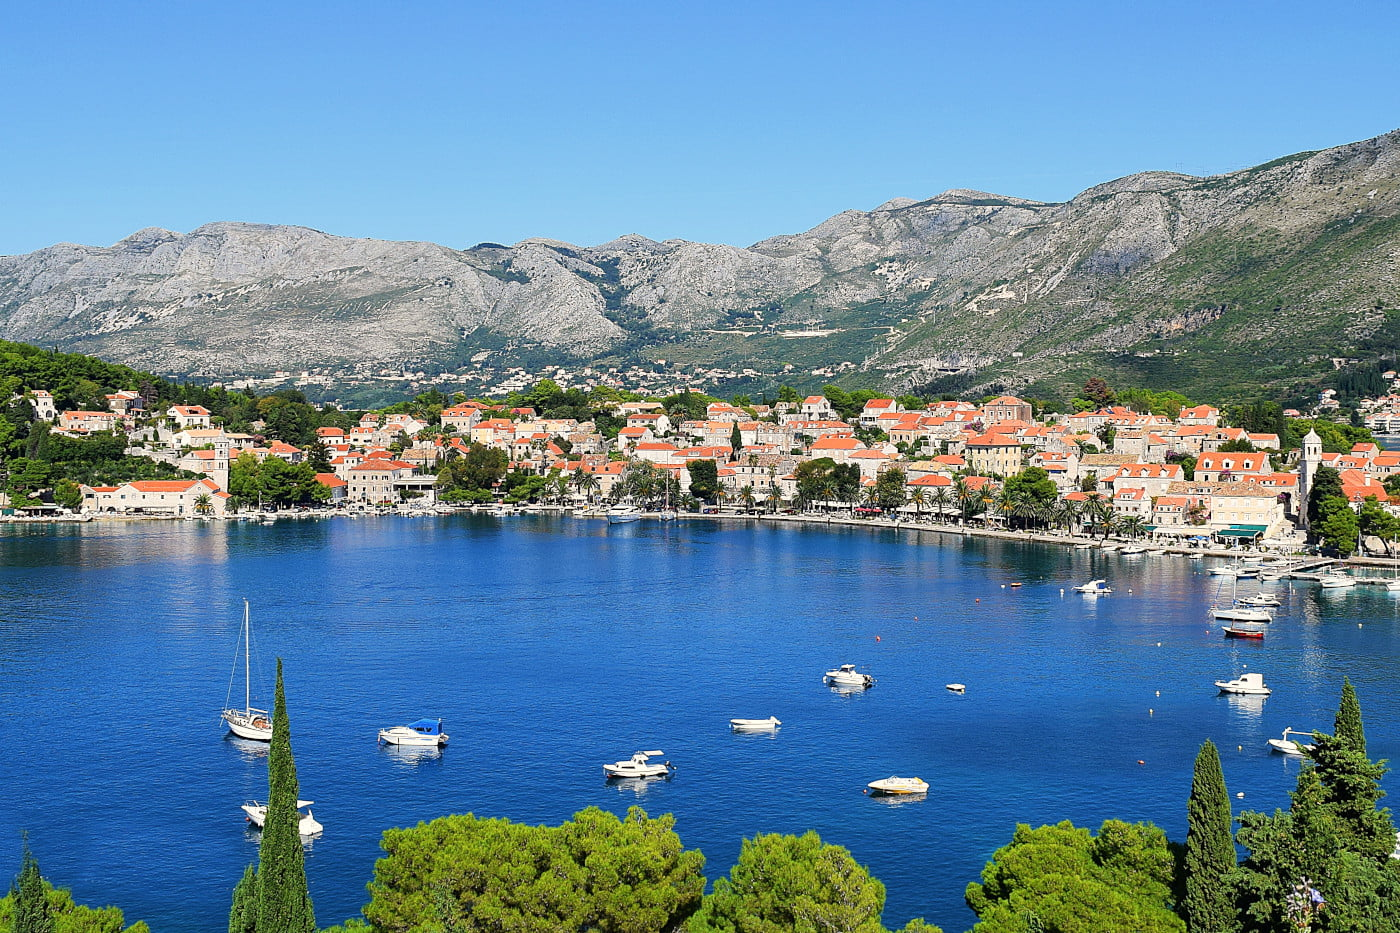 Cavtat, an Ancient town with rich history